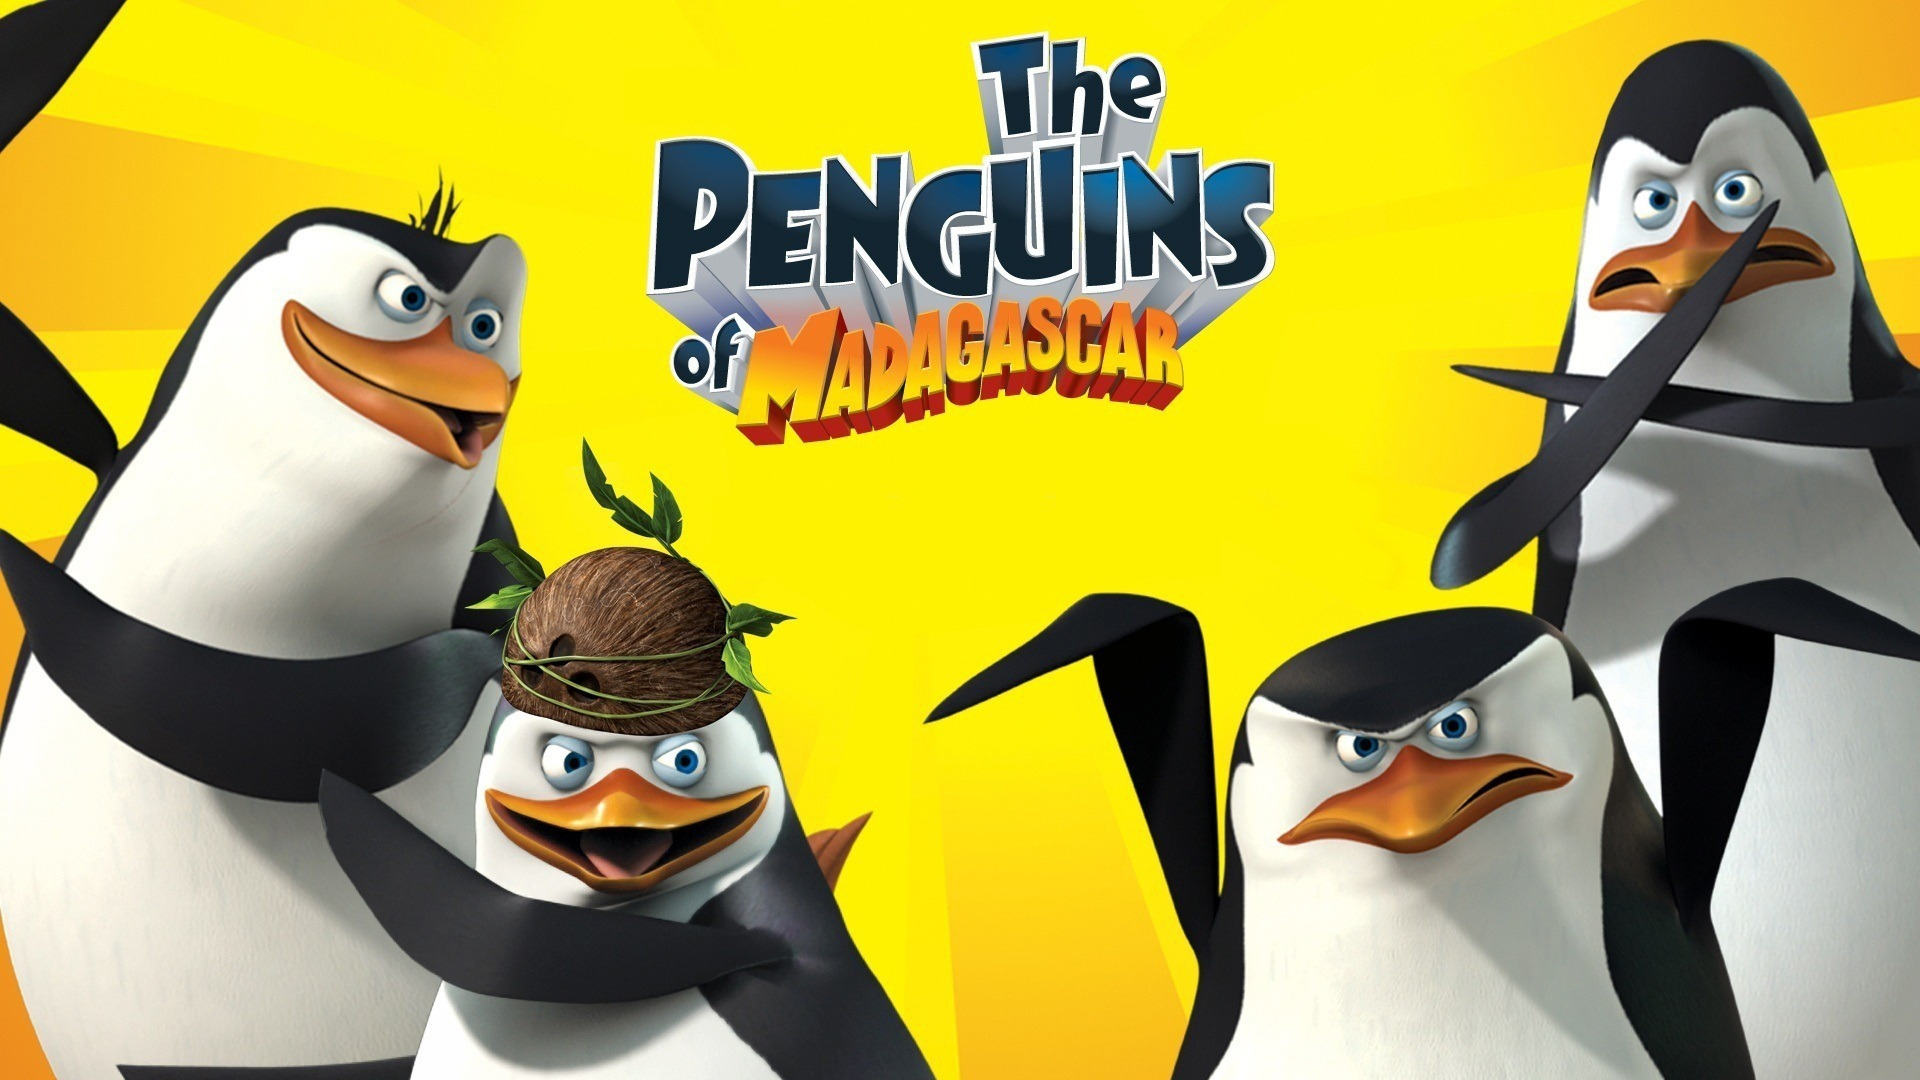 The Penguins Of Madagascar for 1920 x 1080 HDTV 1080p resolution